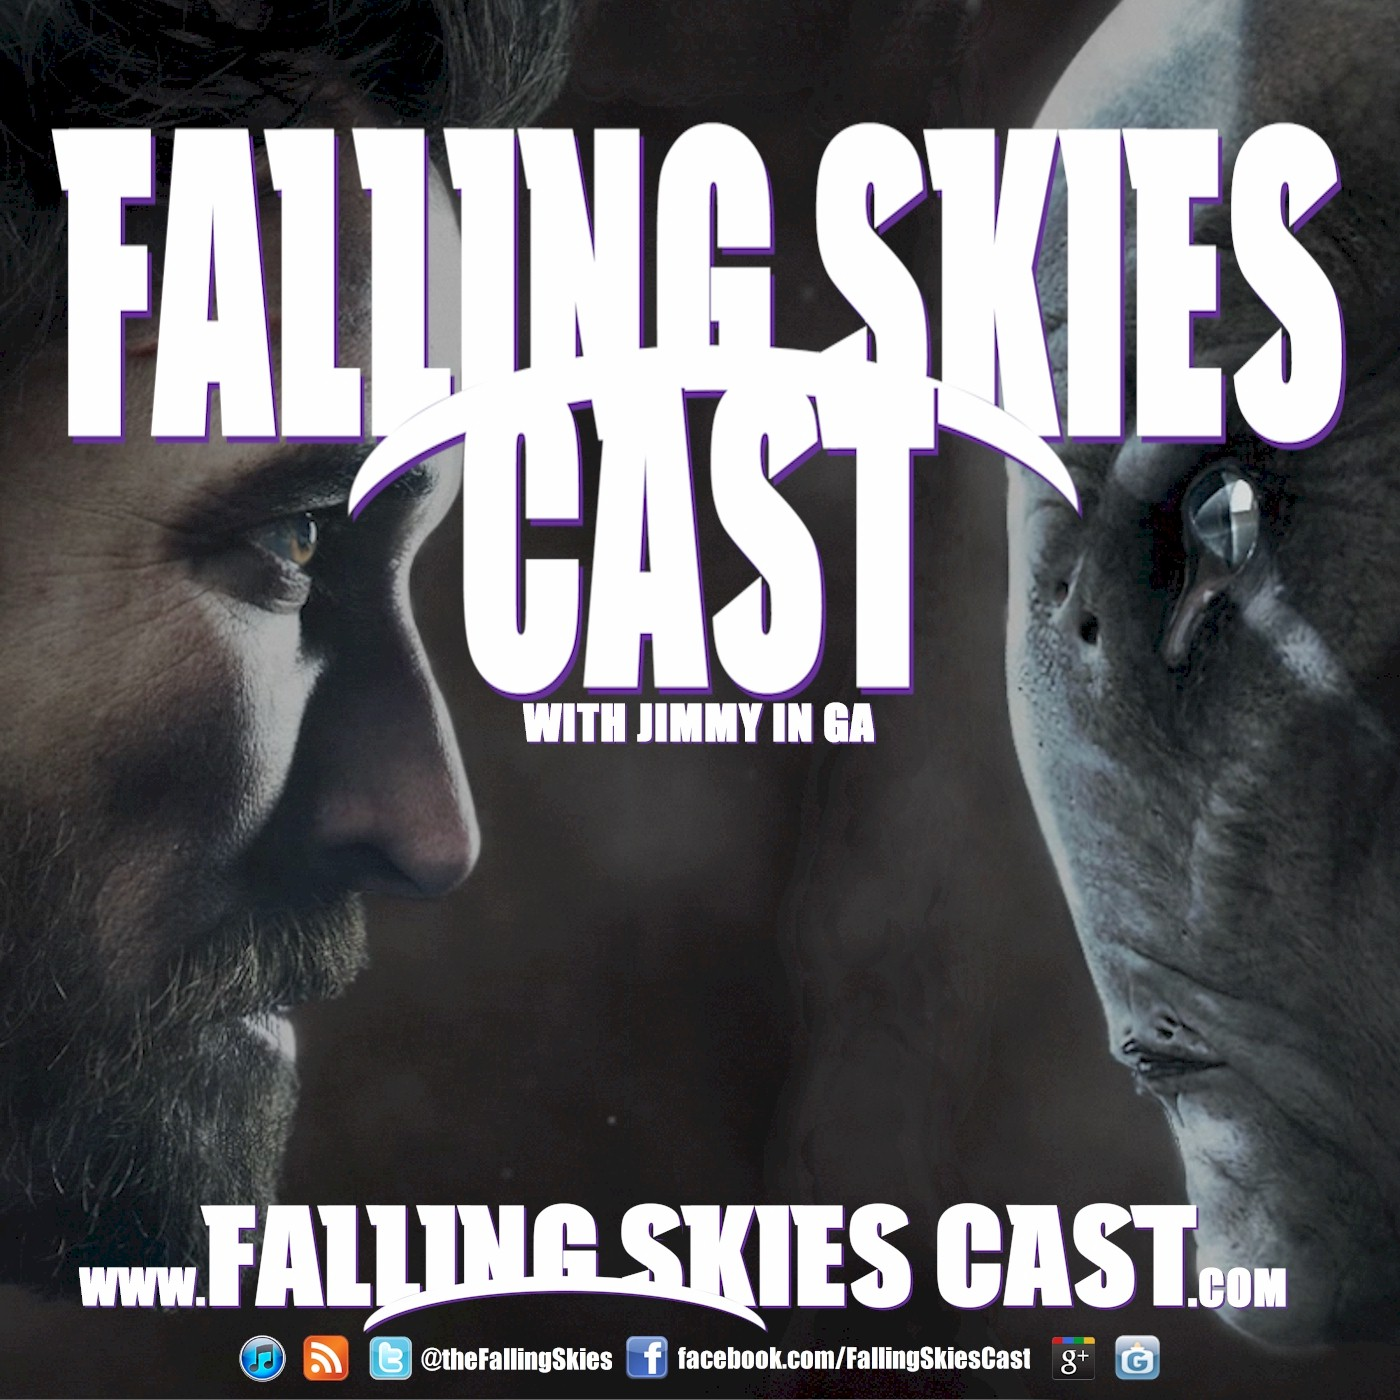 Falling Skies Cast - The First Podcast Dedicated to Falling Skies on TNT